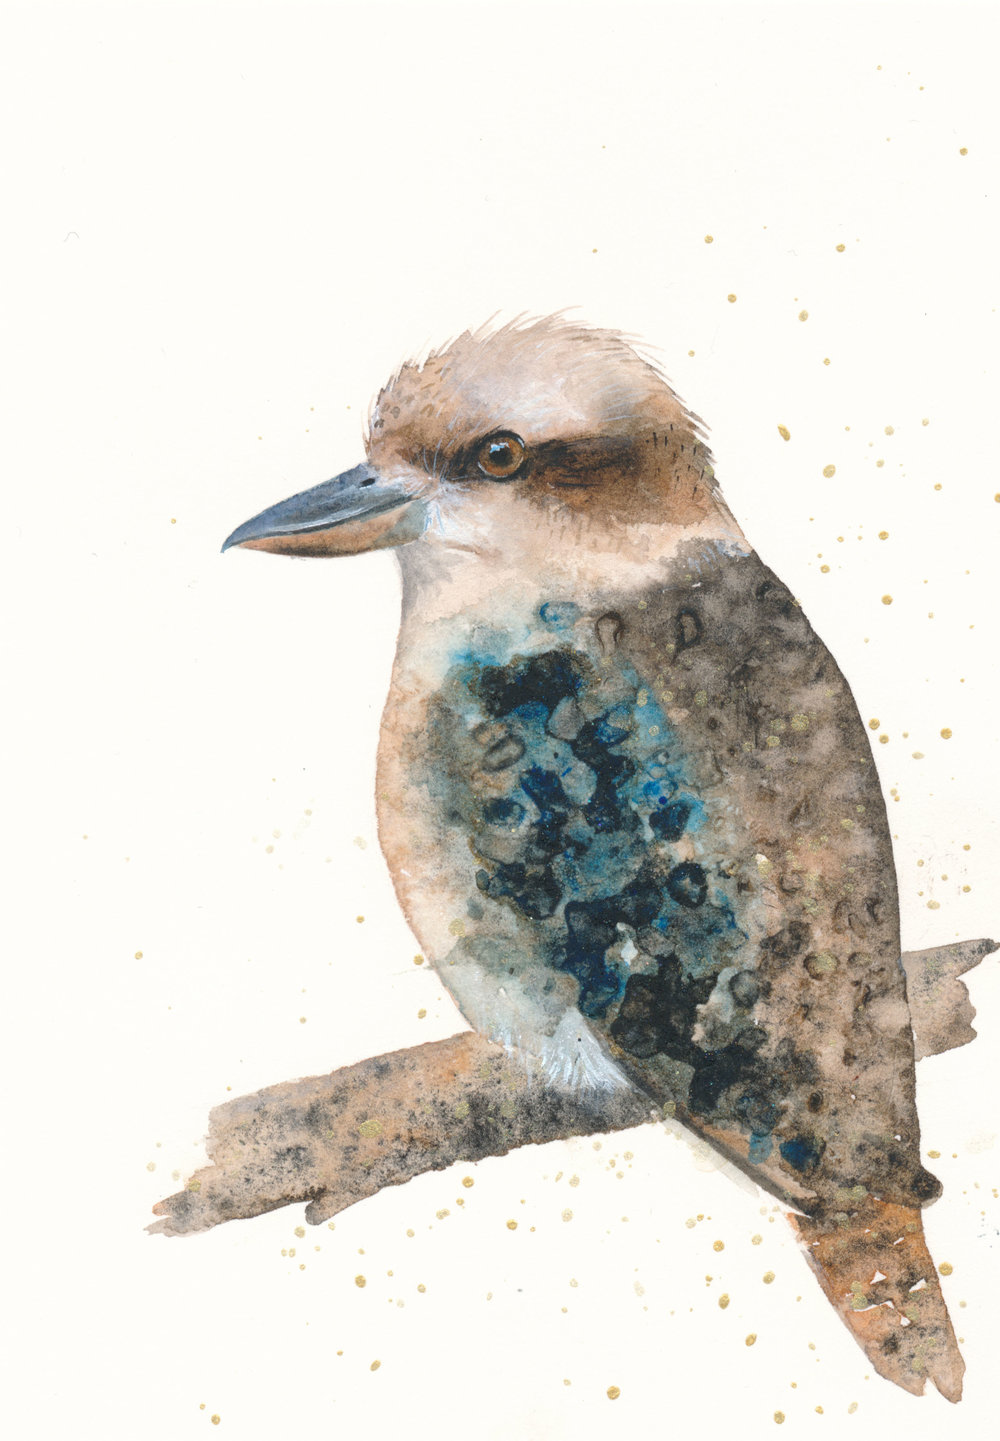 Kookaburra Watercolour Zoe Wood 2017